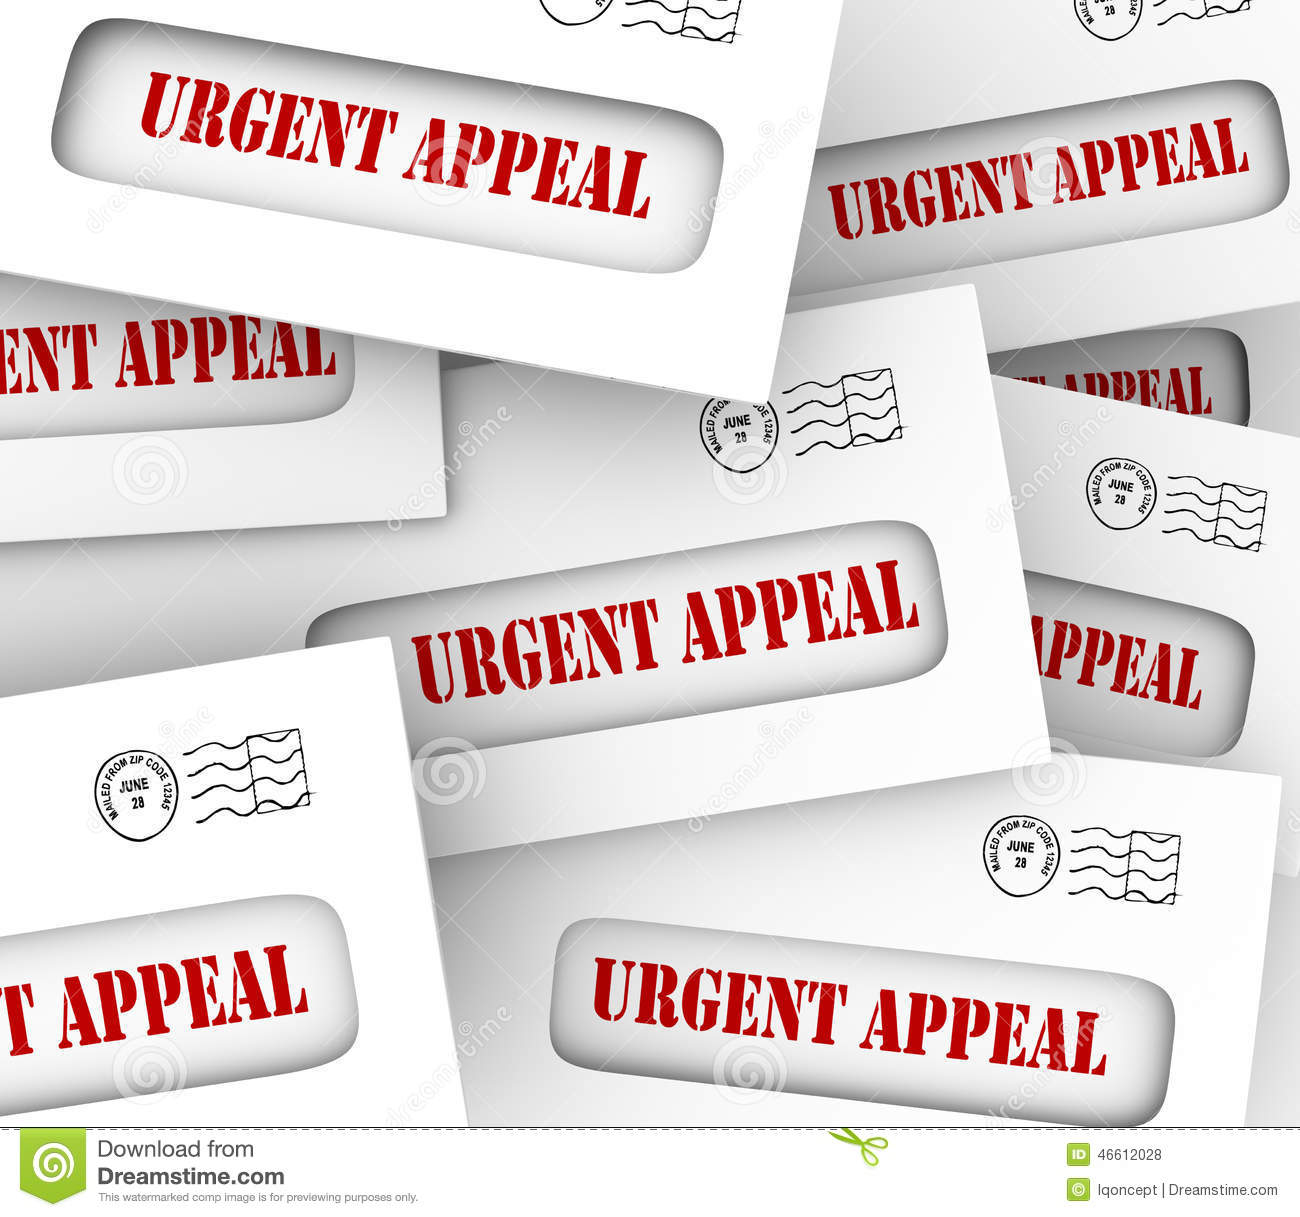 Urgent Appeal Envelopes Mailed Message Important Plea Asking Mon.